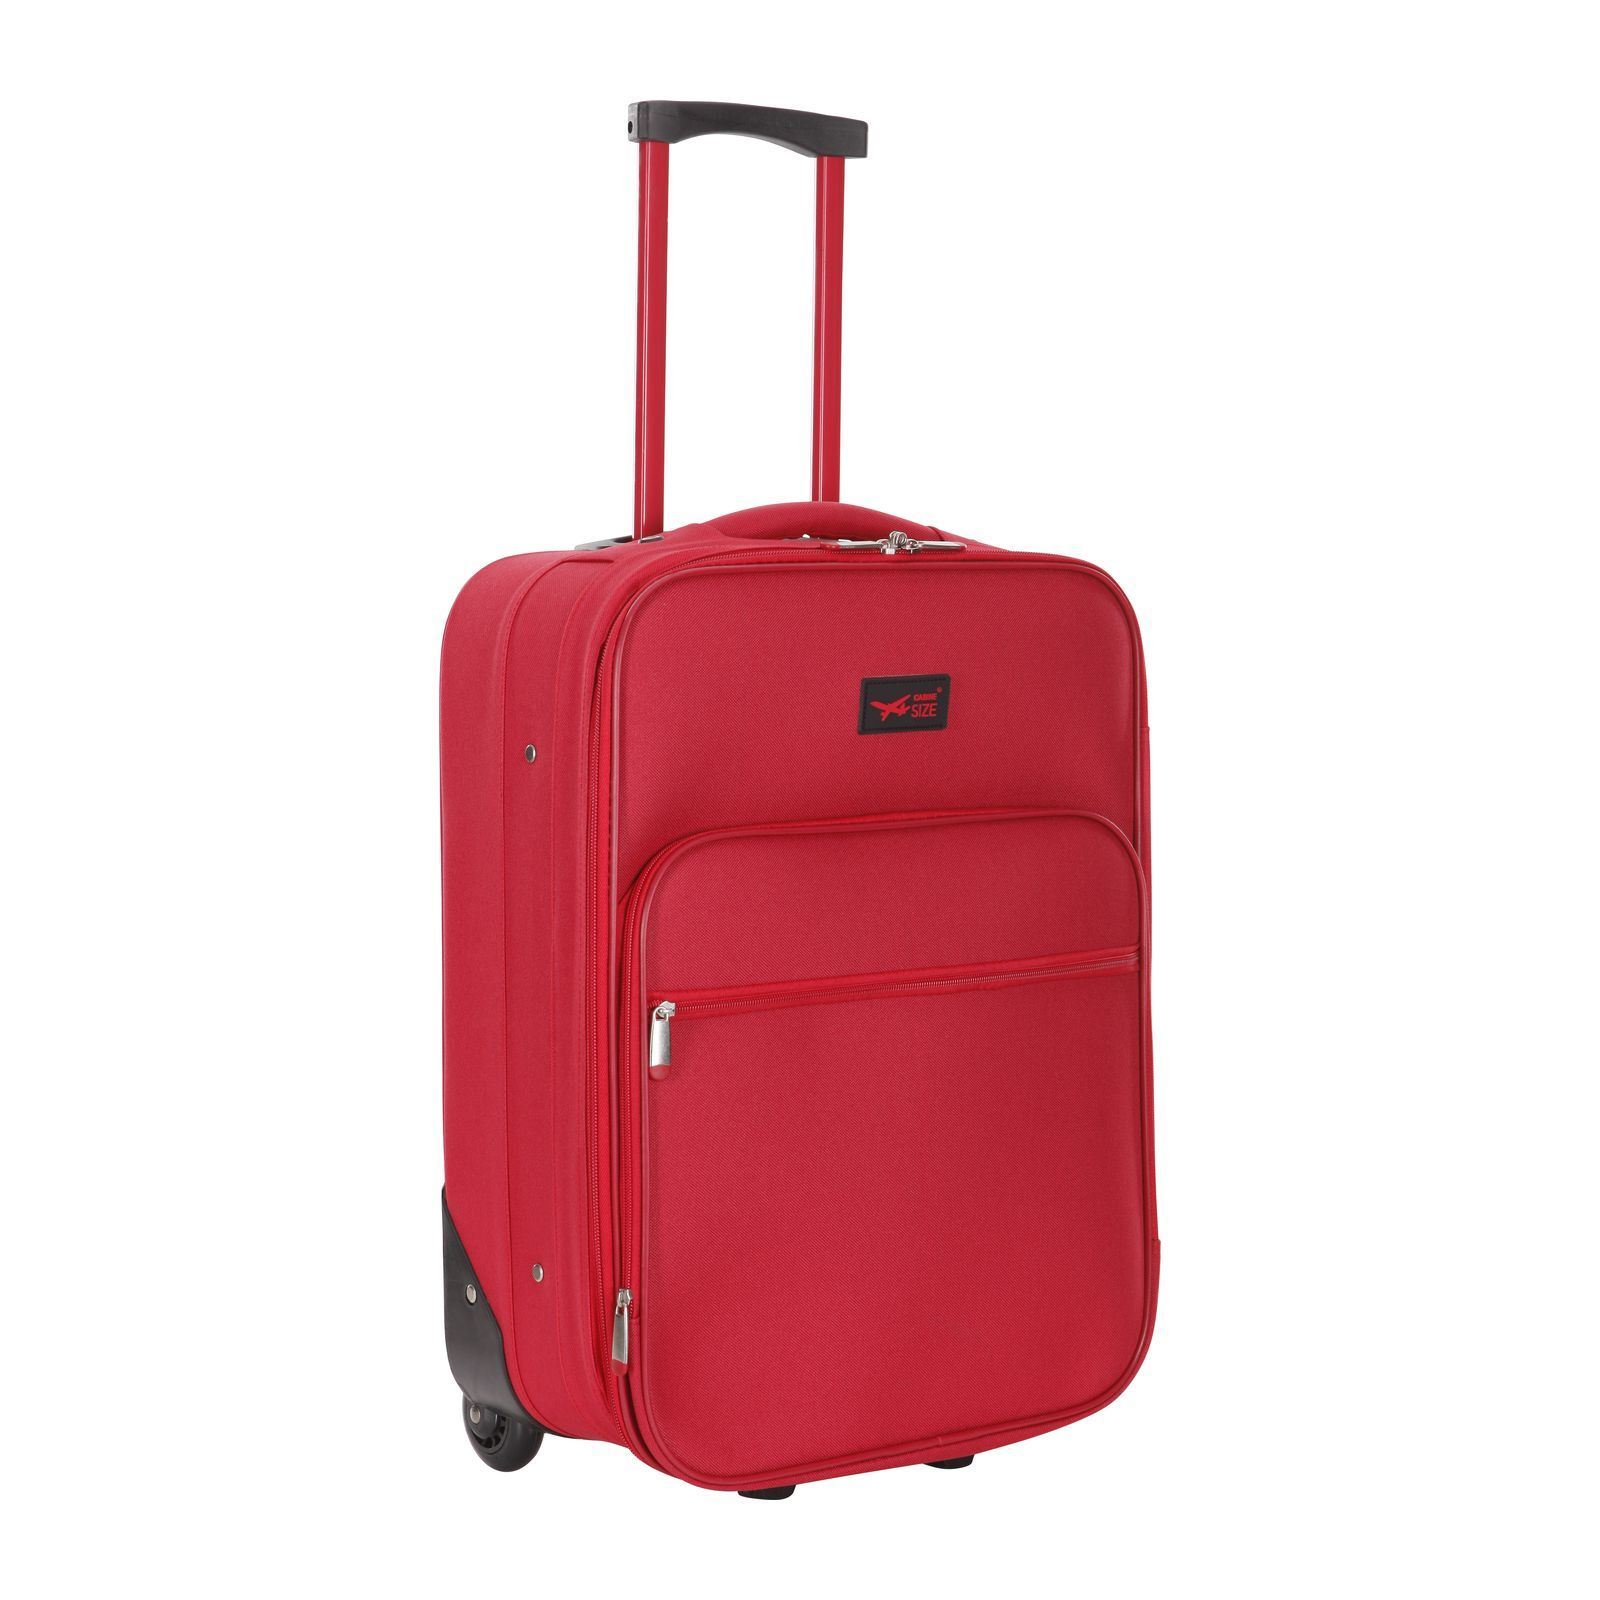 Cabine Size Valise - rouge | Brandalley - Valise Rouge